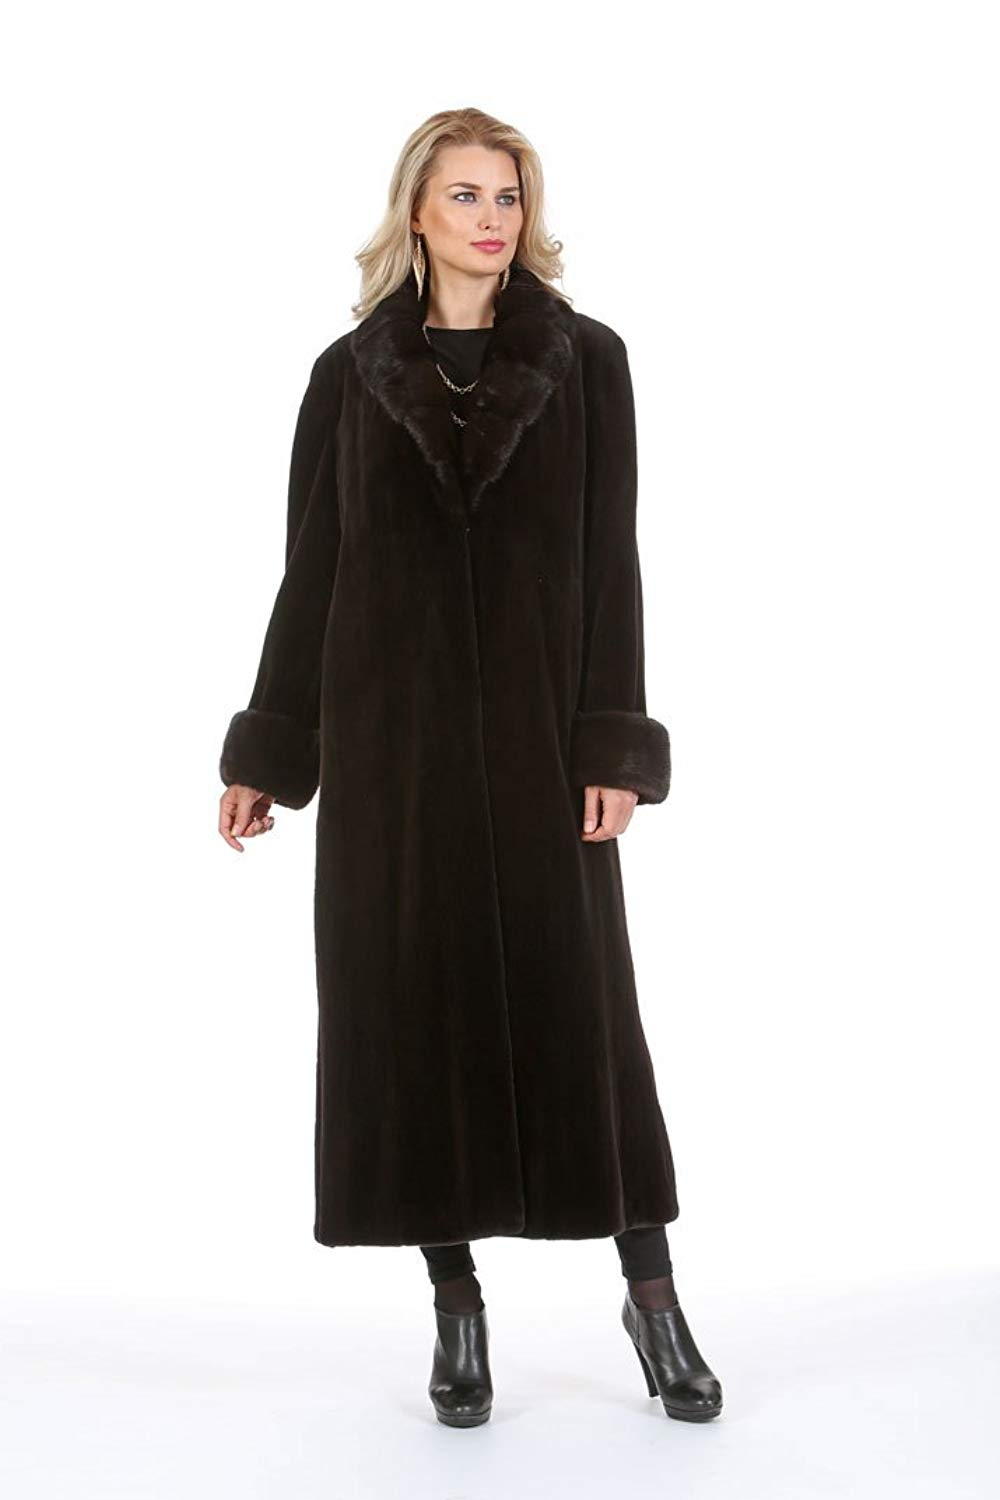 Madison Avenue Mall Dark Brown Womens Sheared Mink Coat Real Natural Crosscut Mahogany Mink Collar